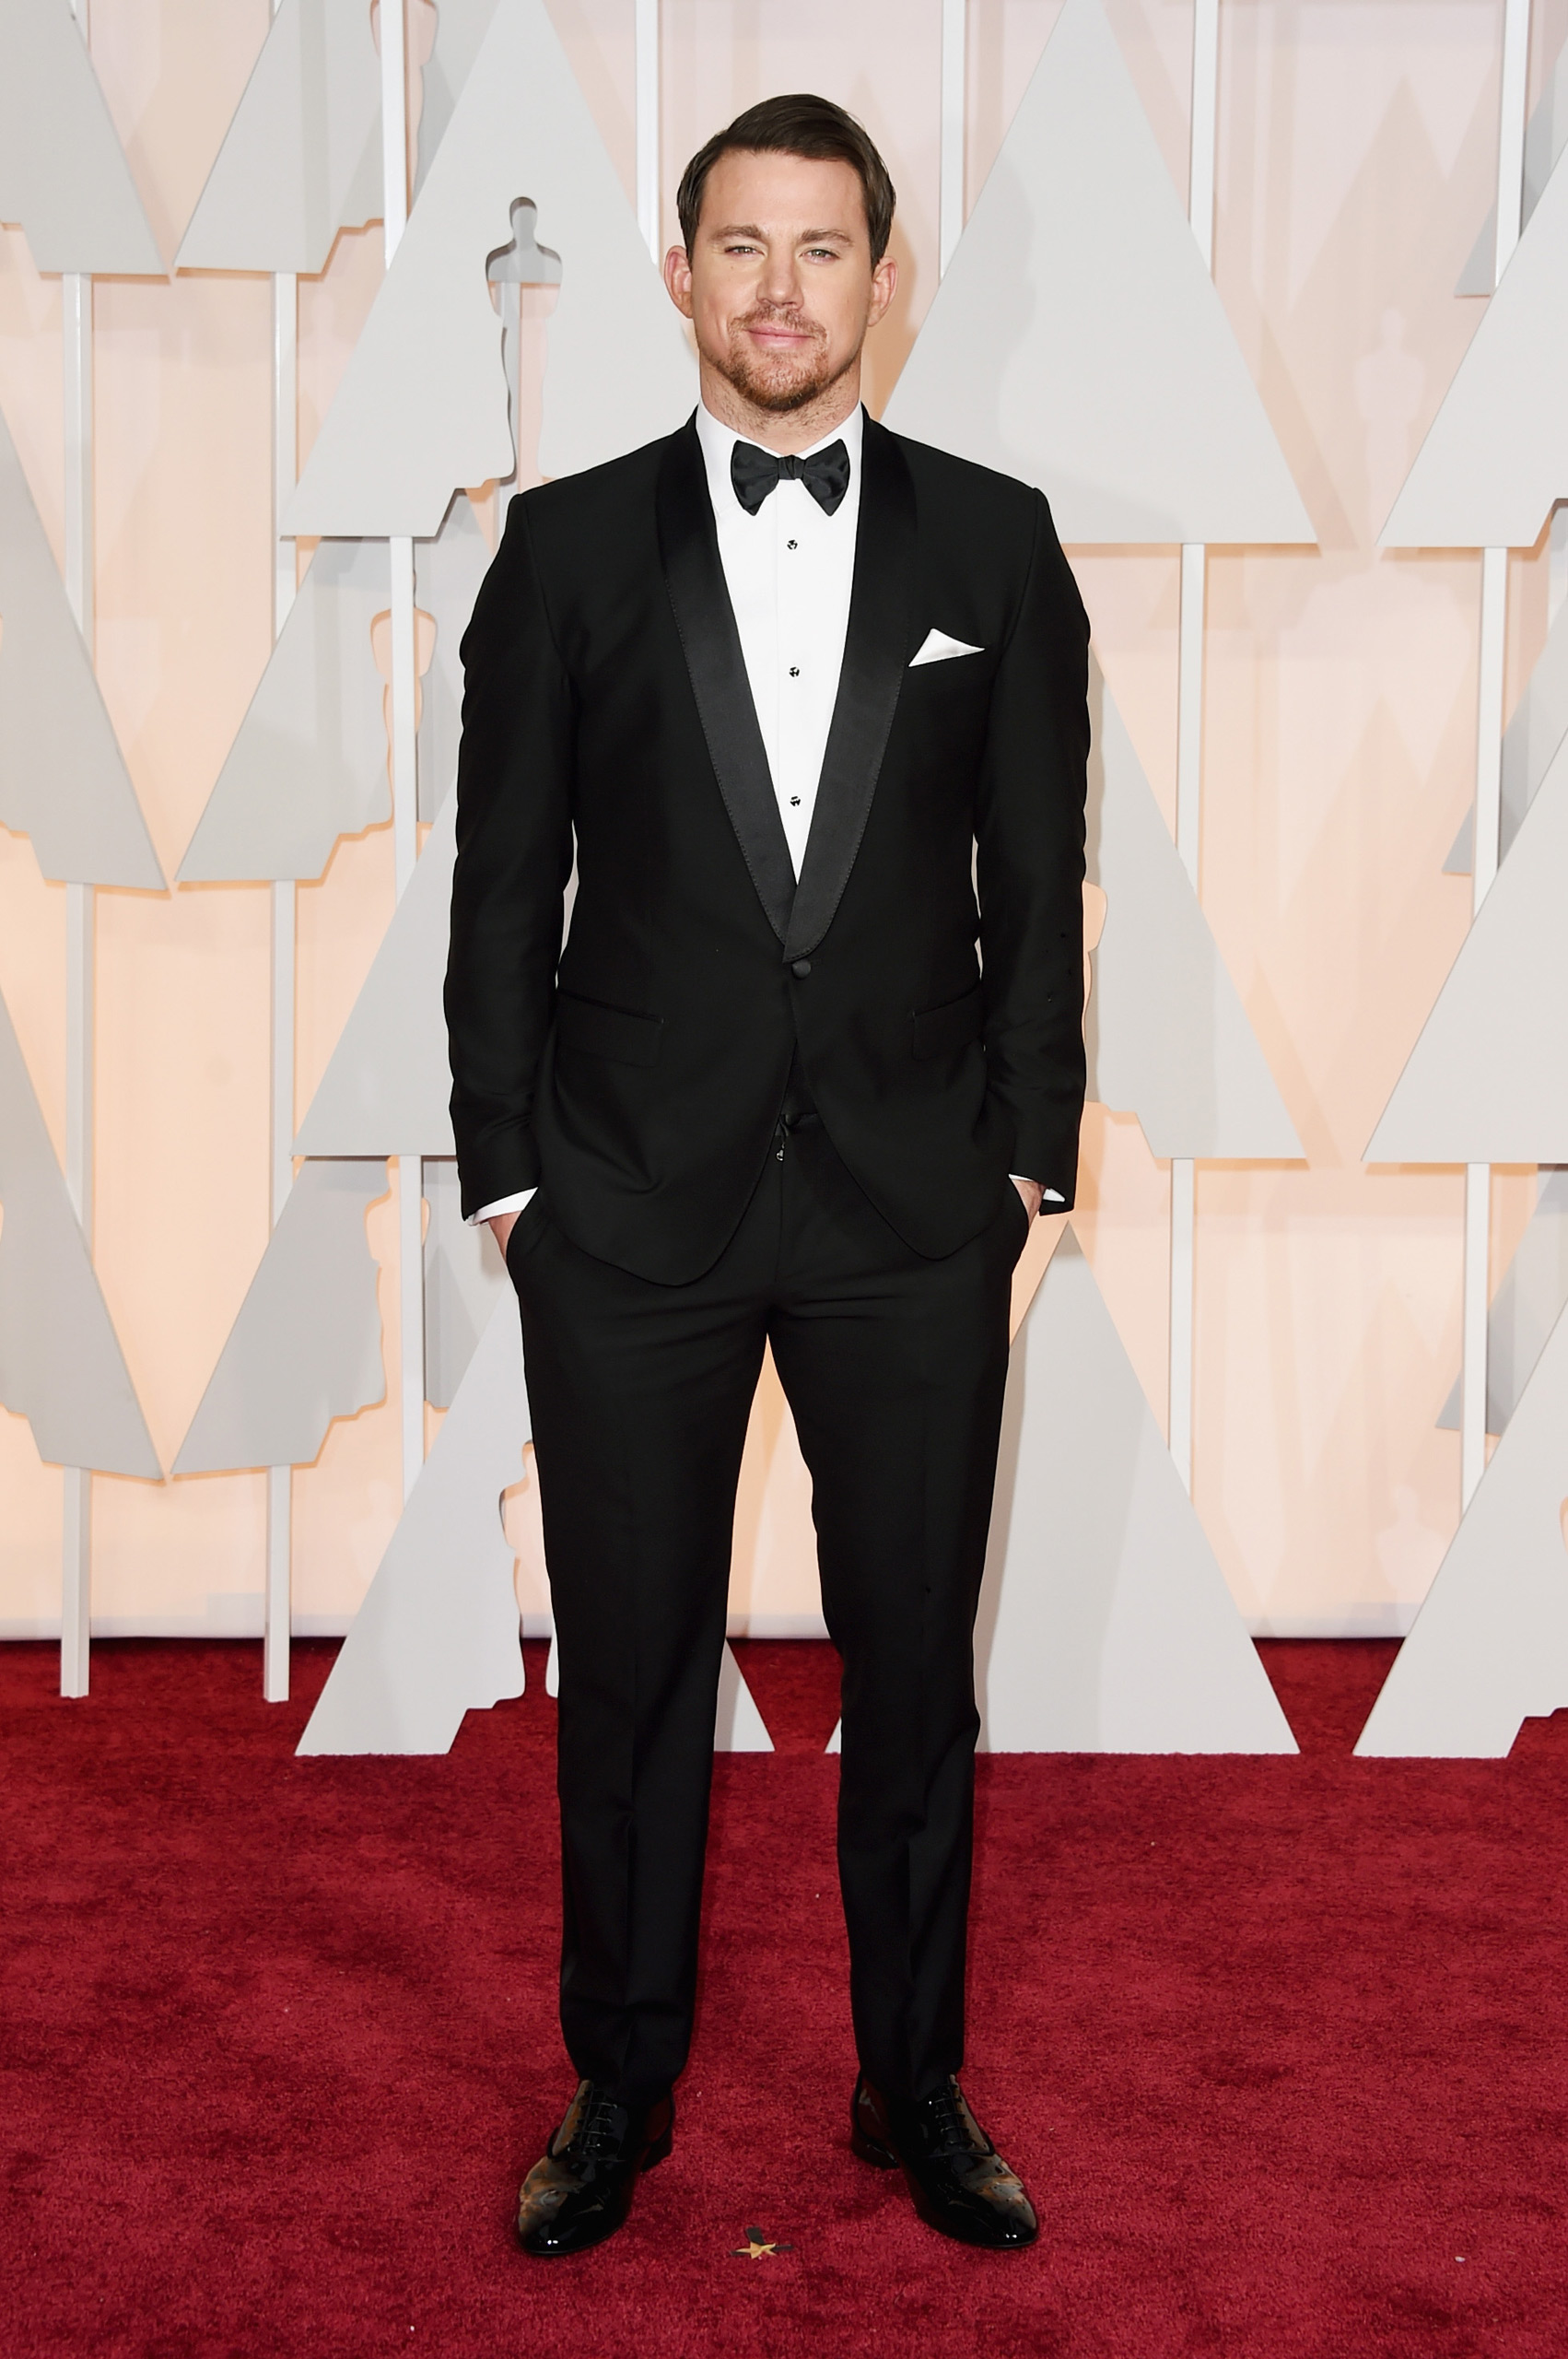 Channing Tatum attends the 87th Annual Academy Awards on Feb. 22, 2015 in Hollywood, Calif.